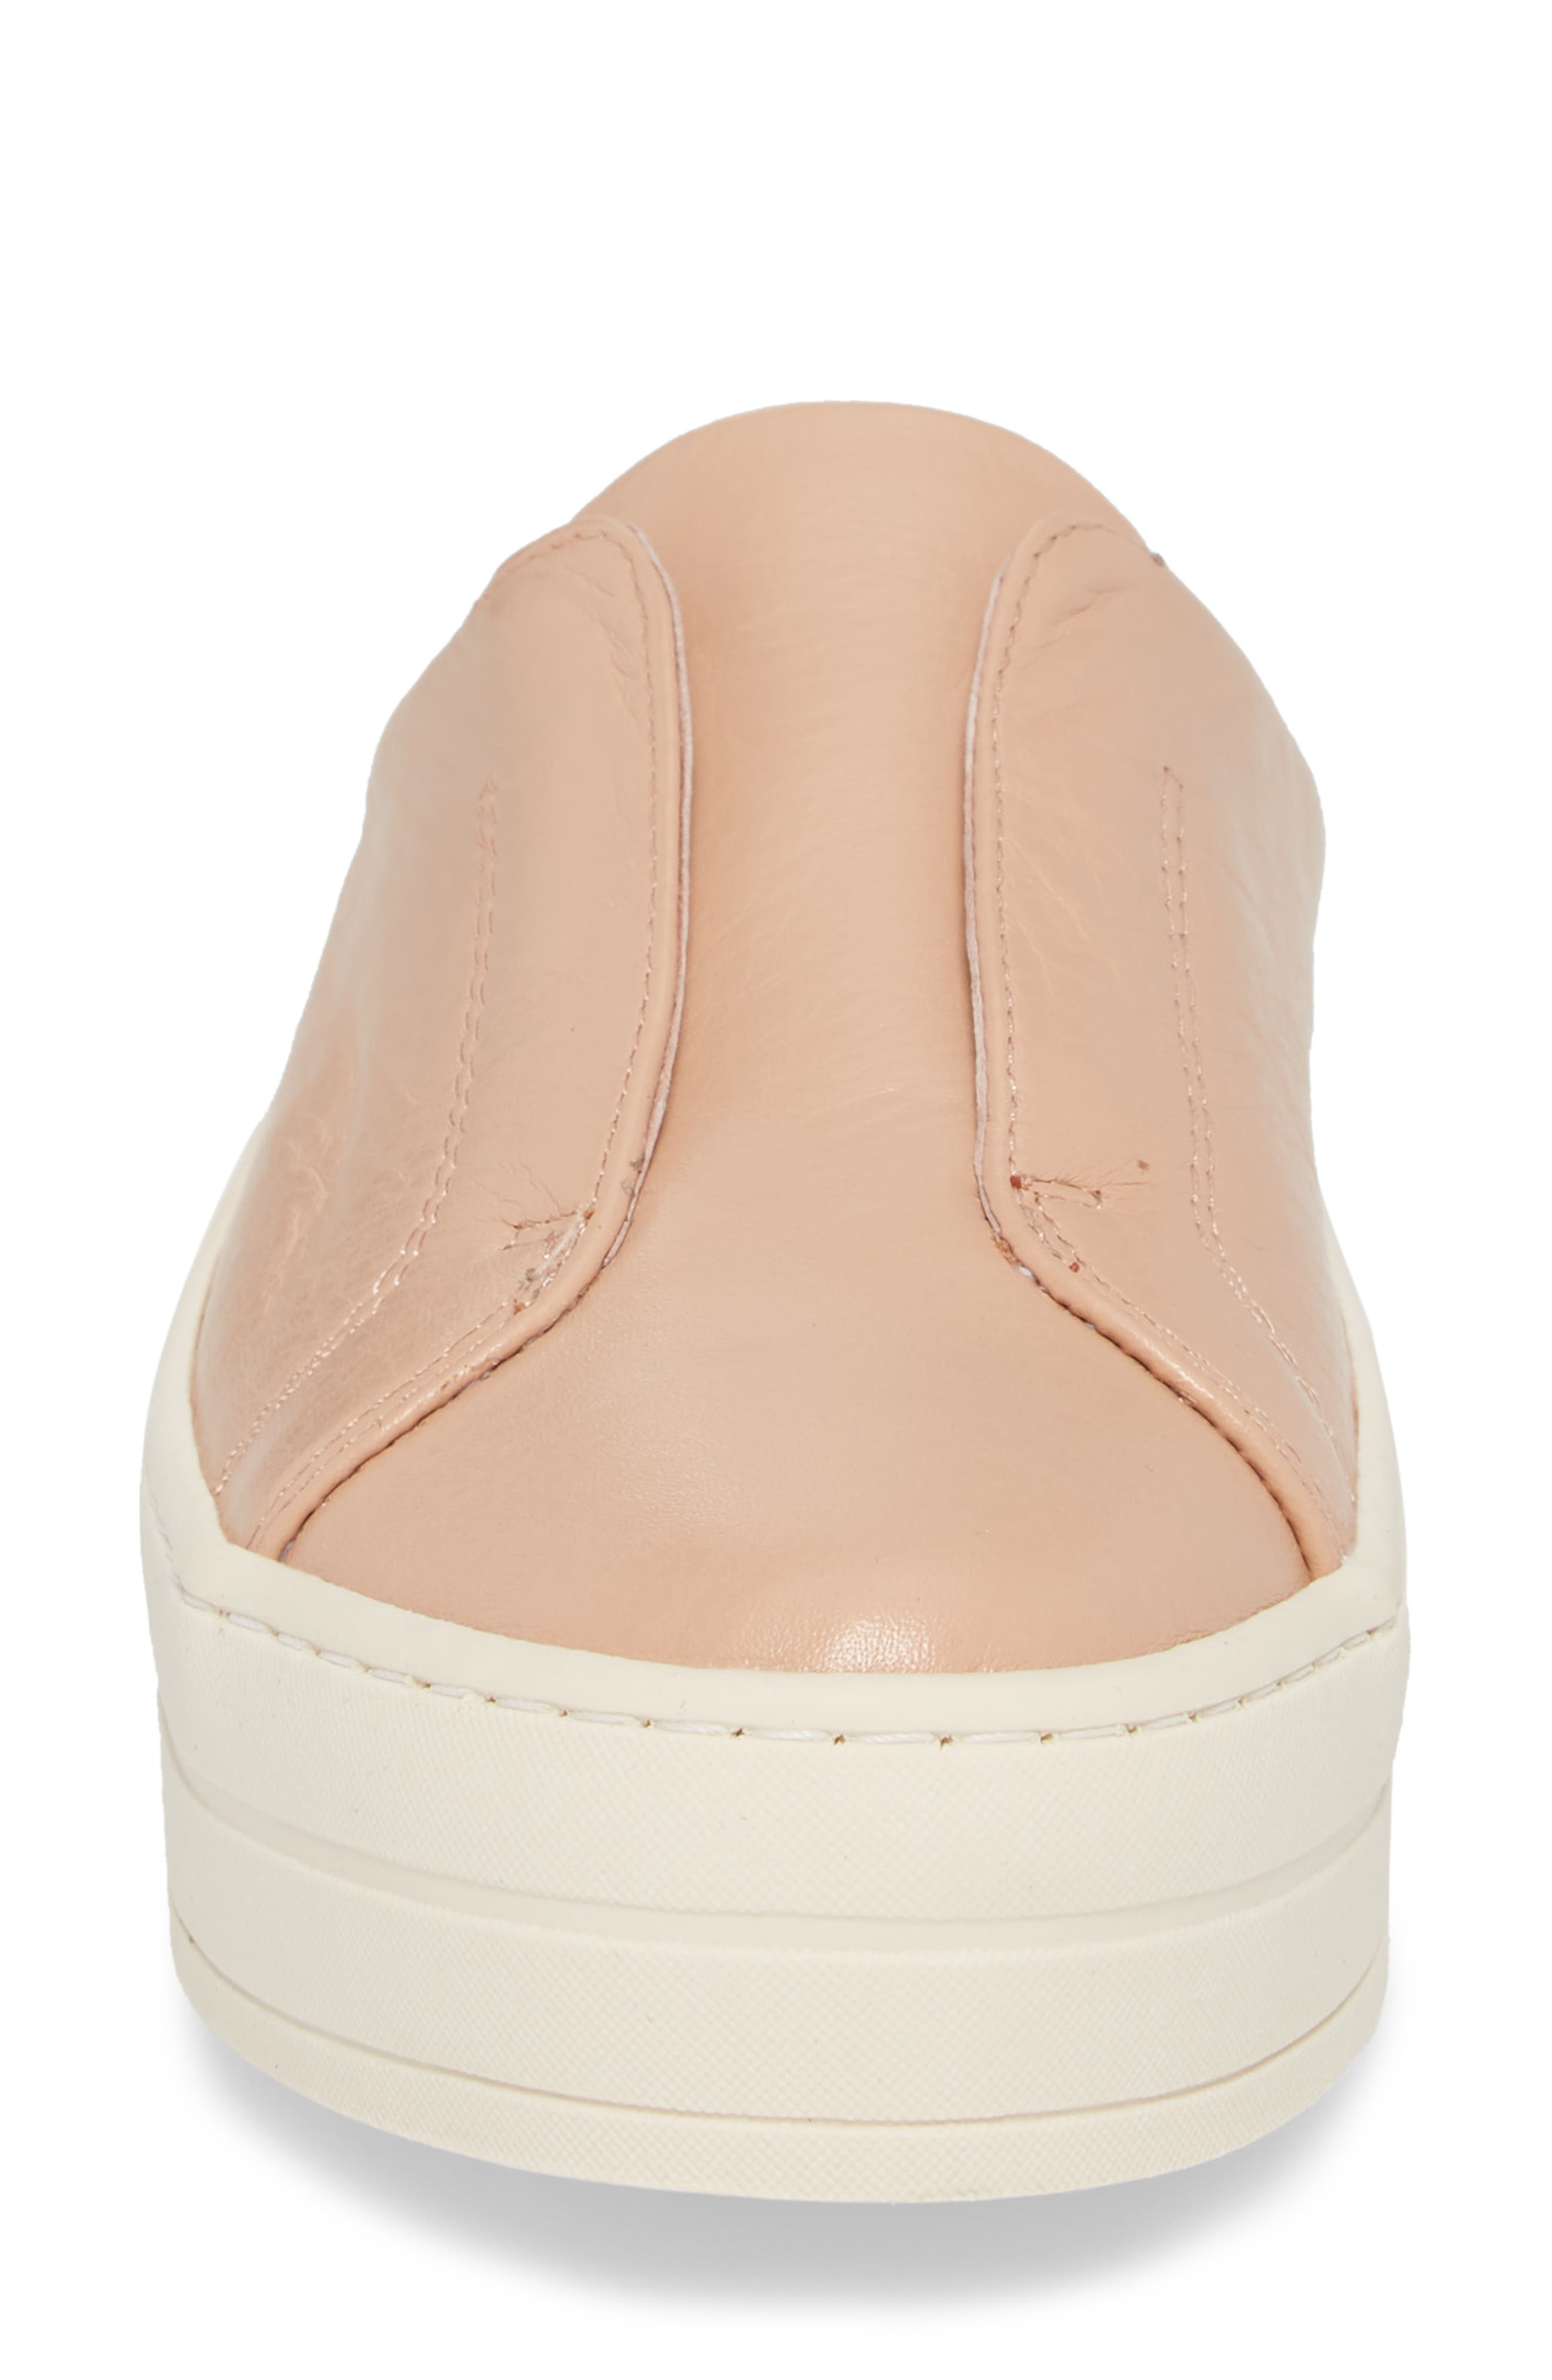 Hara Sneaker Mule,                             Alternate thumbnail 4, color,                             BLUSH SUEDE